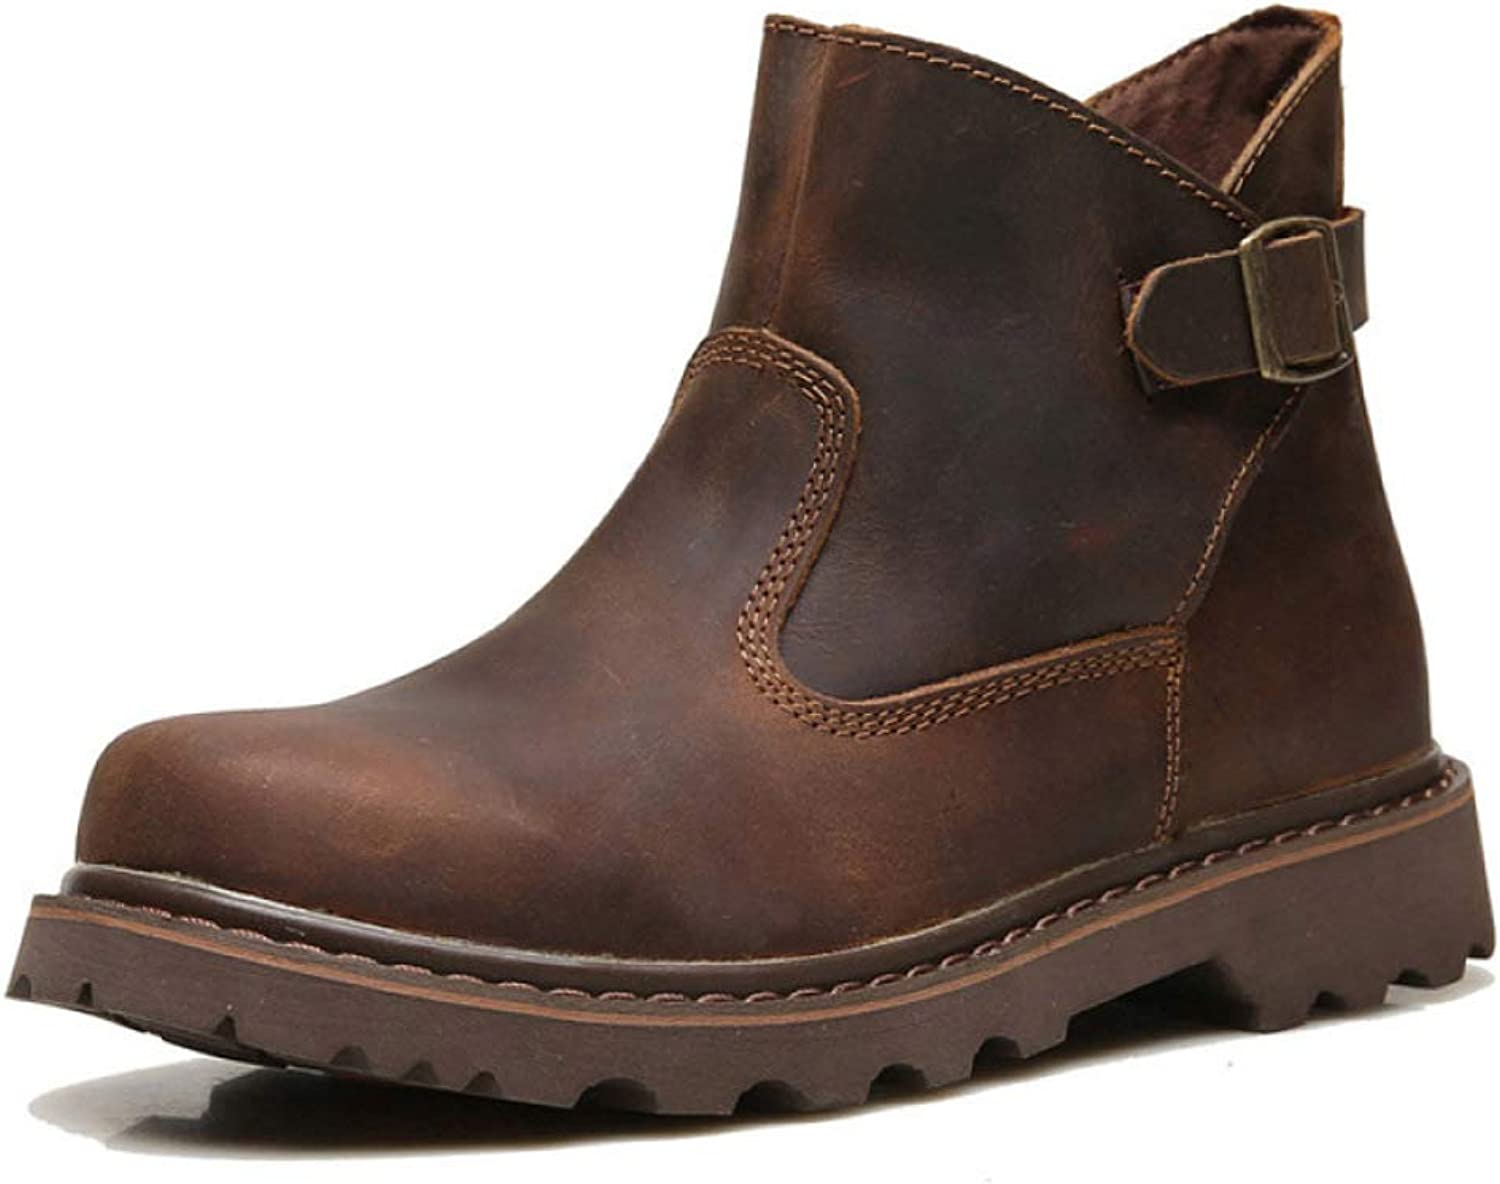 HWG-GAOYZ shoes Men's Martin Boots Ankle Footwear Autumn And Winter Outdoor Retro Buckle Desert Leather Boots Non-slip Fashion,Brown-40